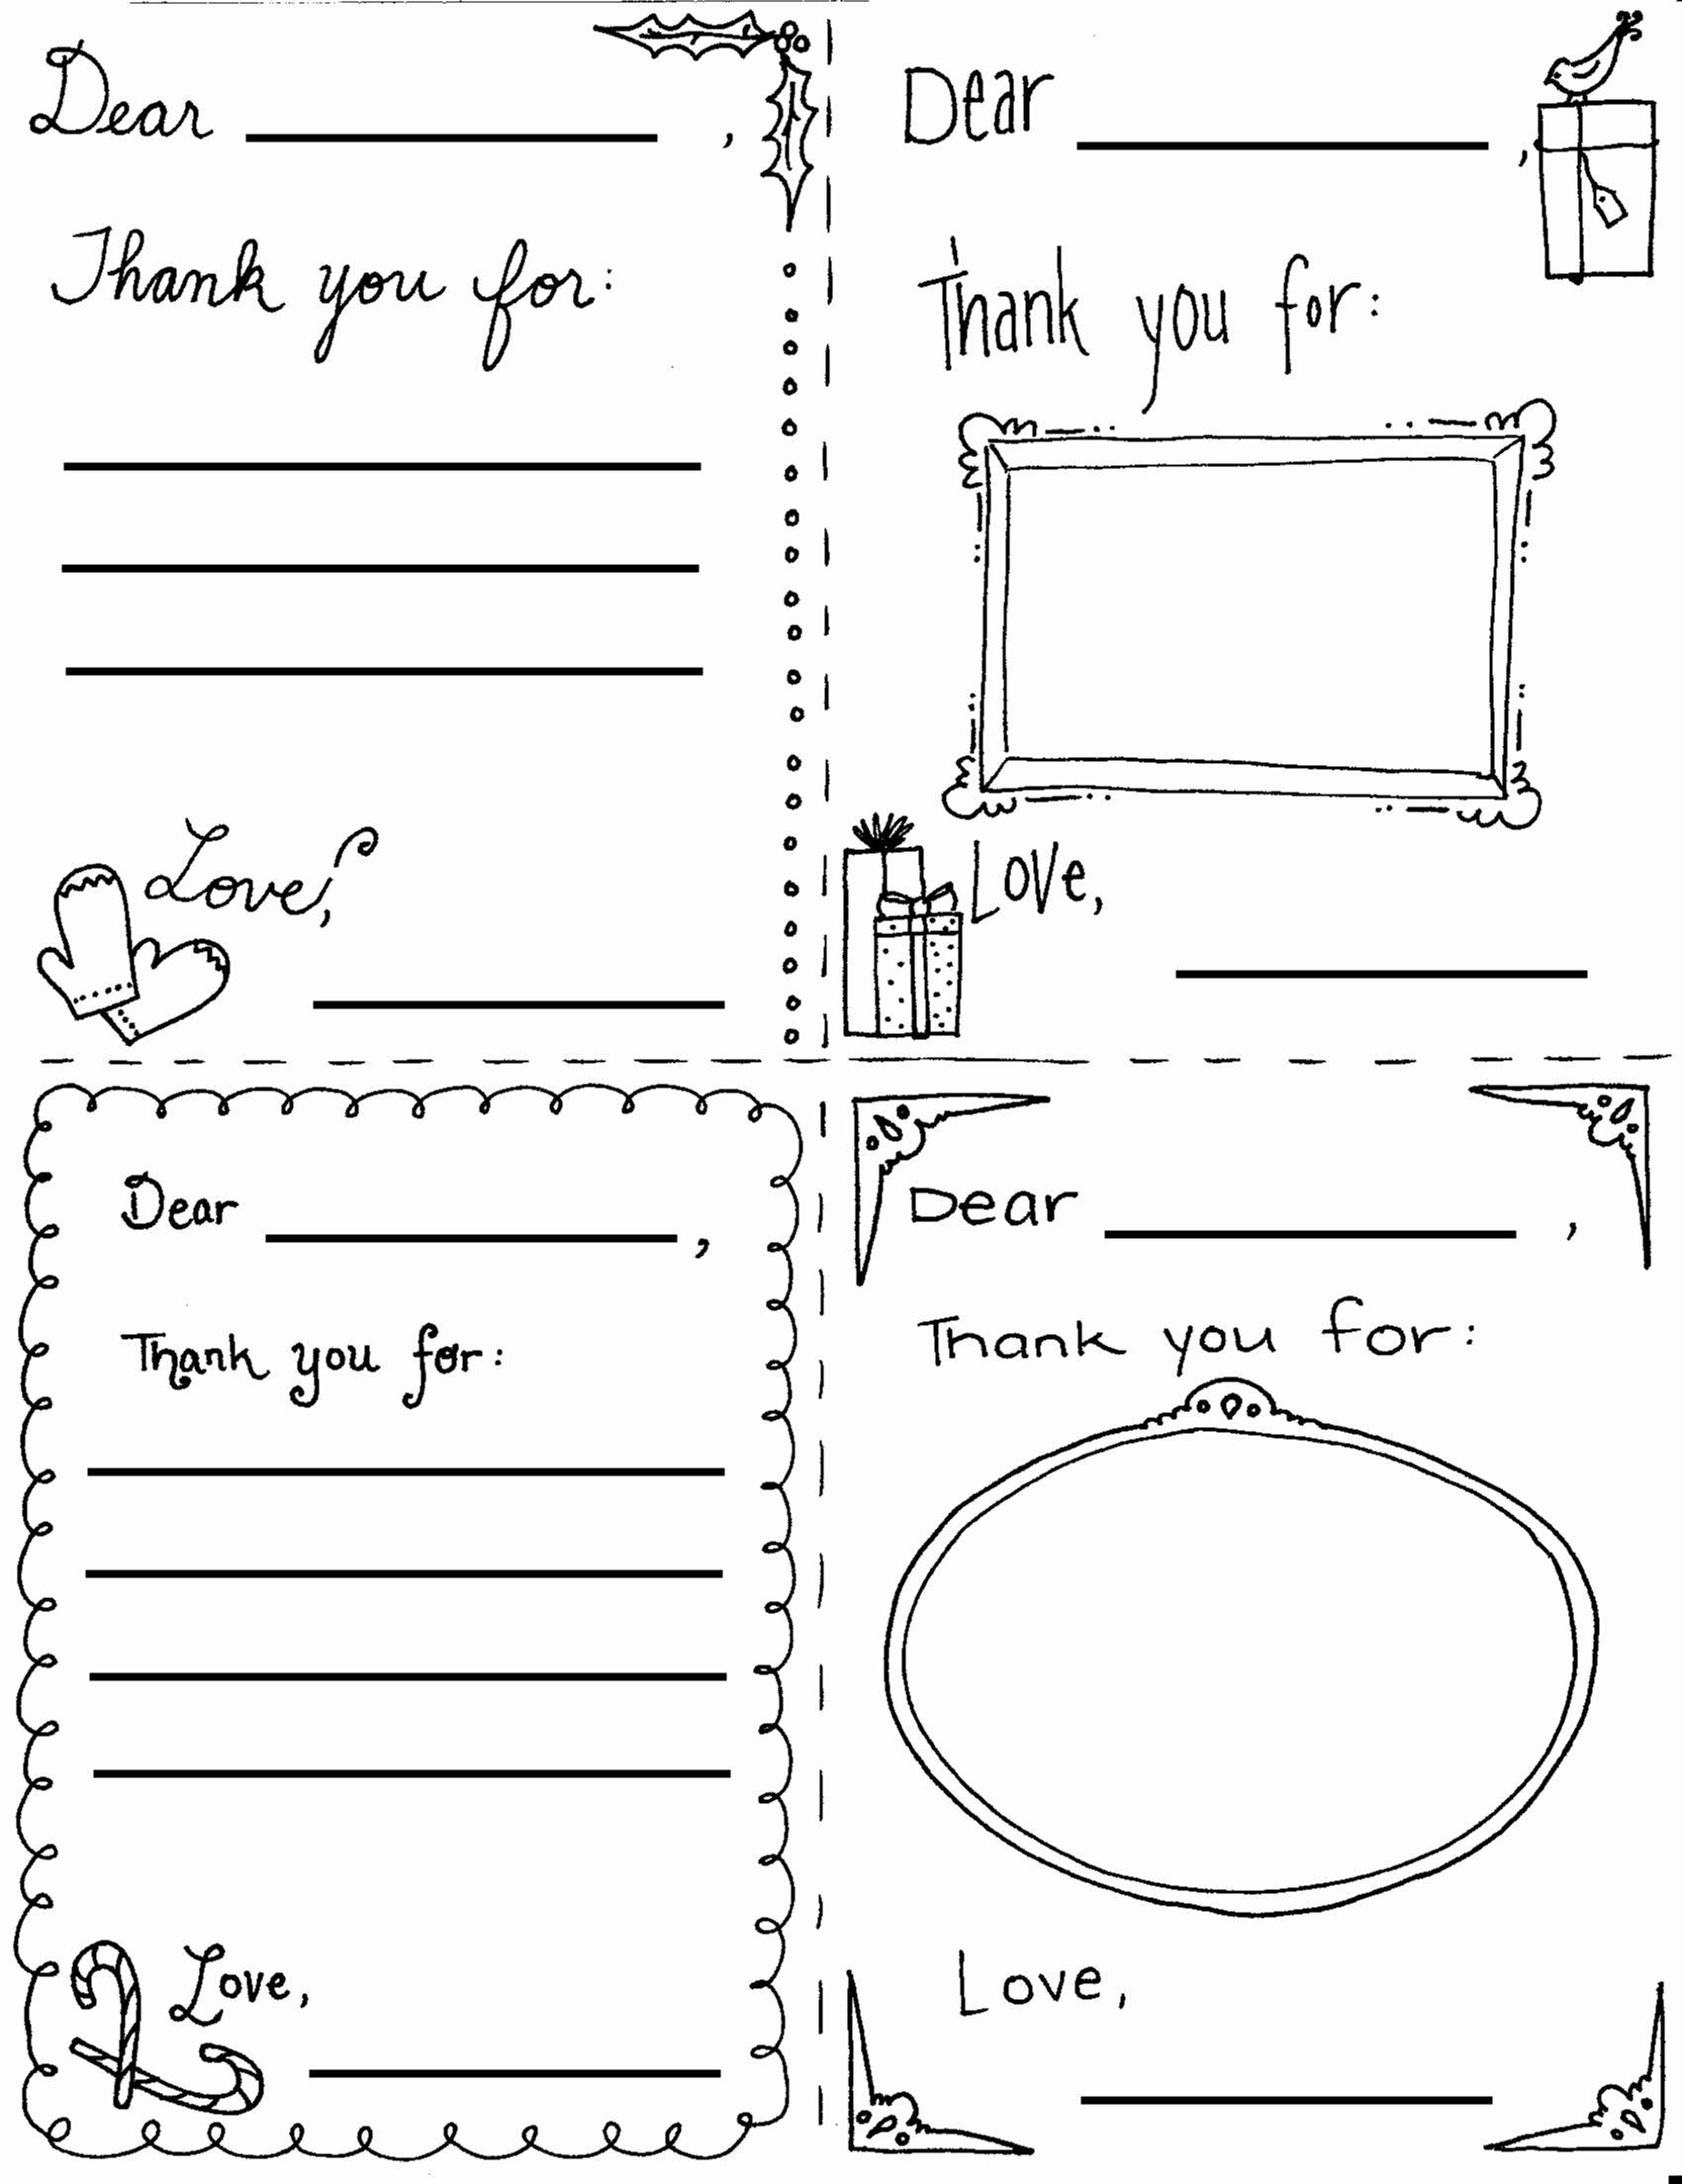 Teacher Appreciation Card Printable Fresh Coloring Coloring Pages Thank You Cards Tremen Printable Thank You Notes Printable Thank You Cards Note Card Template